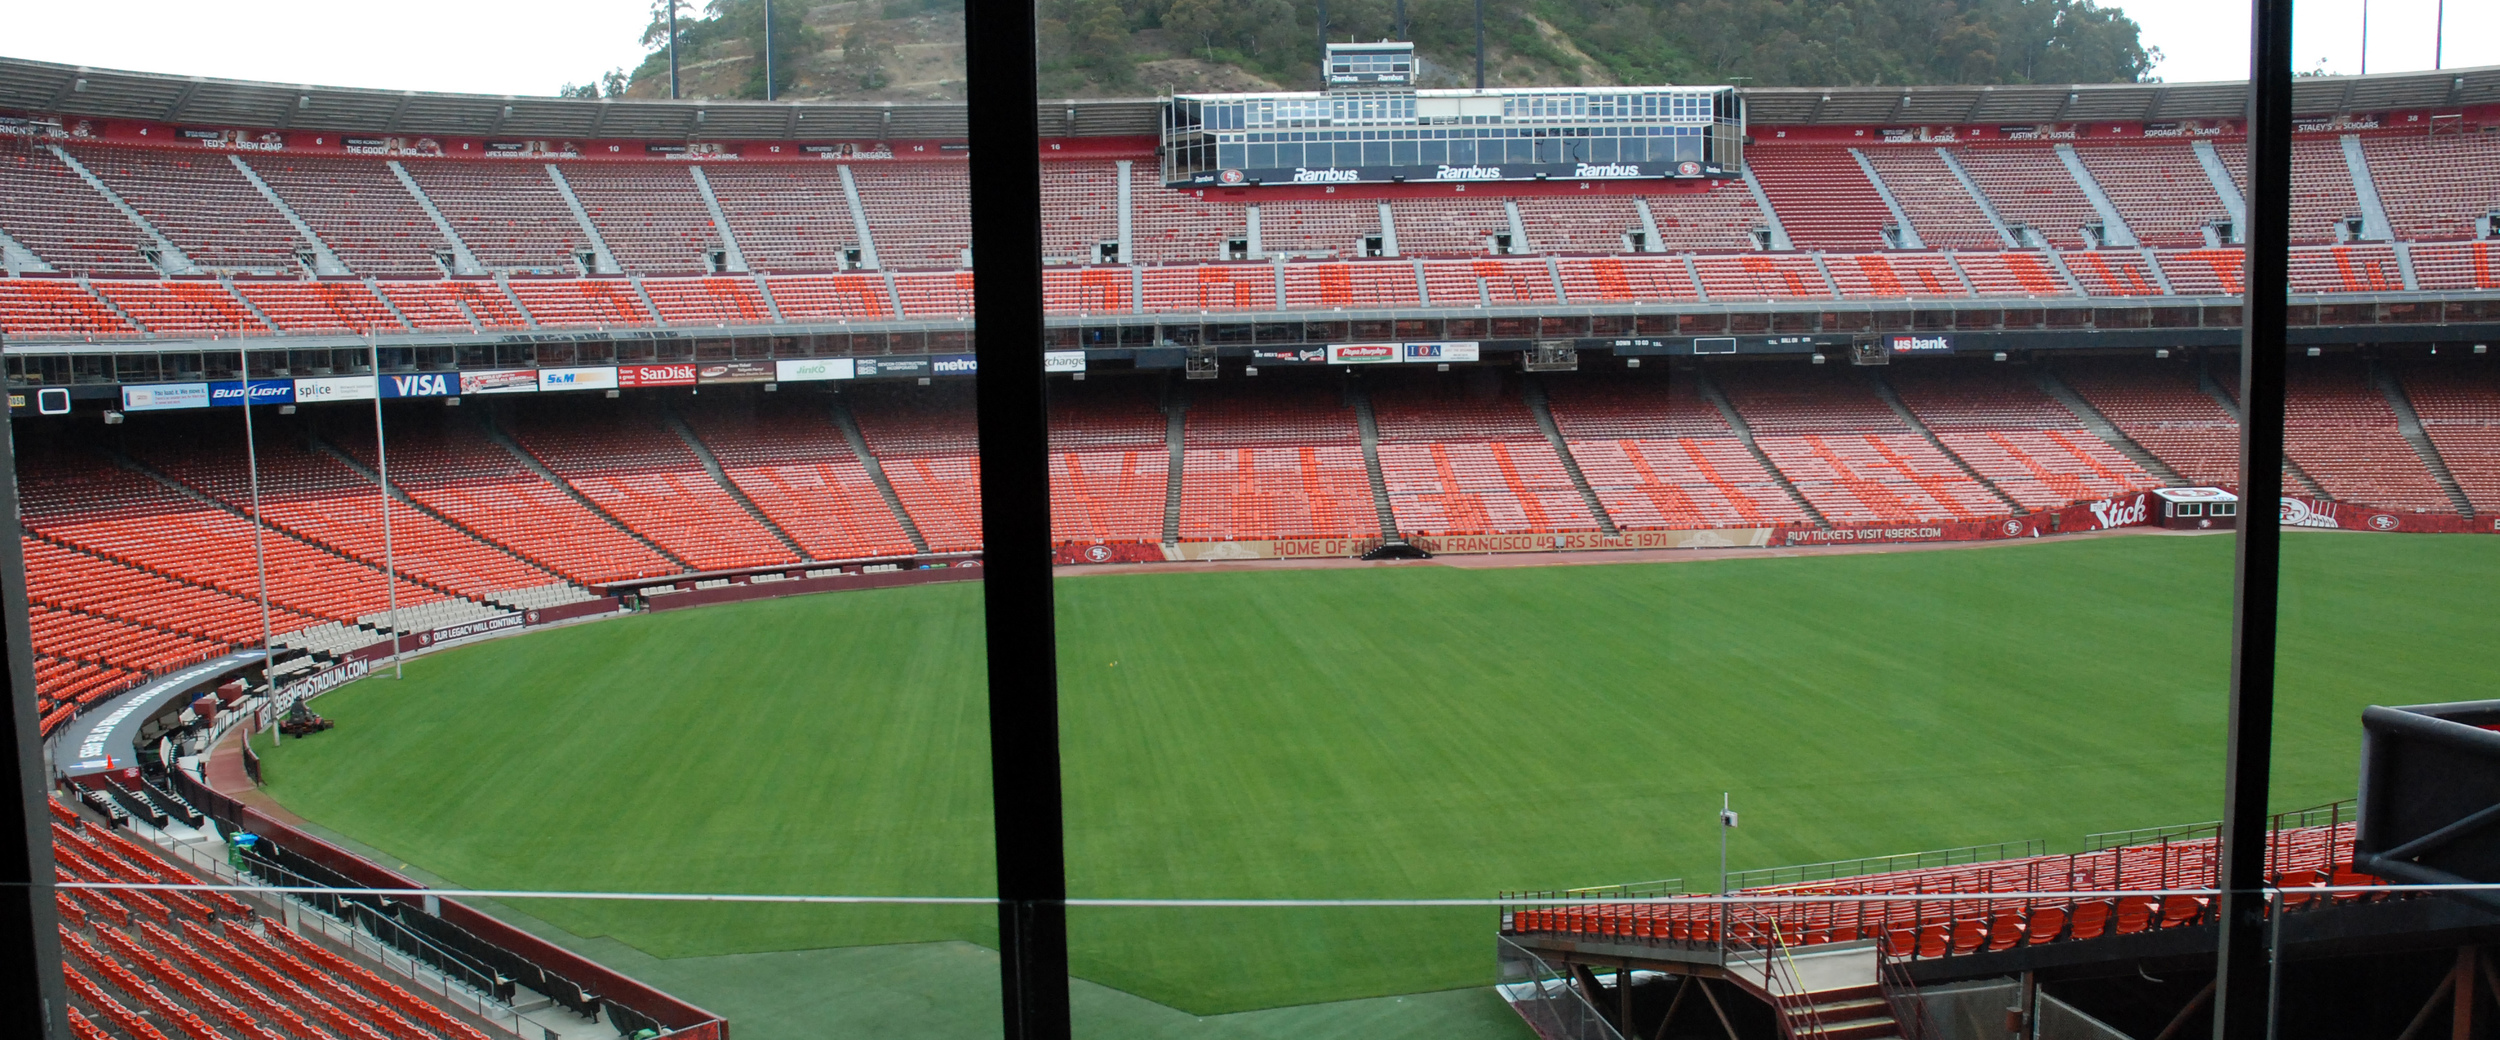 Experiment In Terror -  Showdown at Candlestick Park